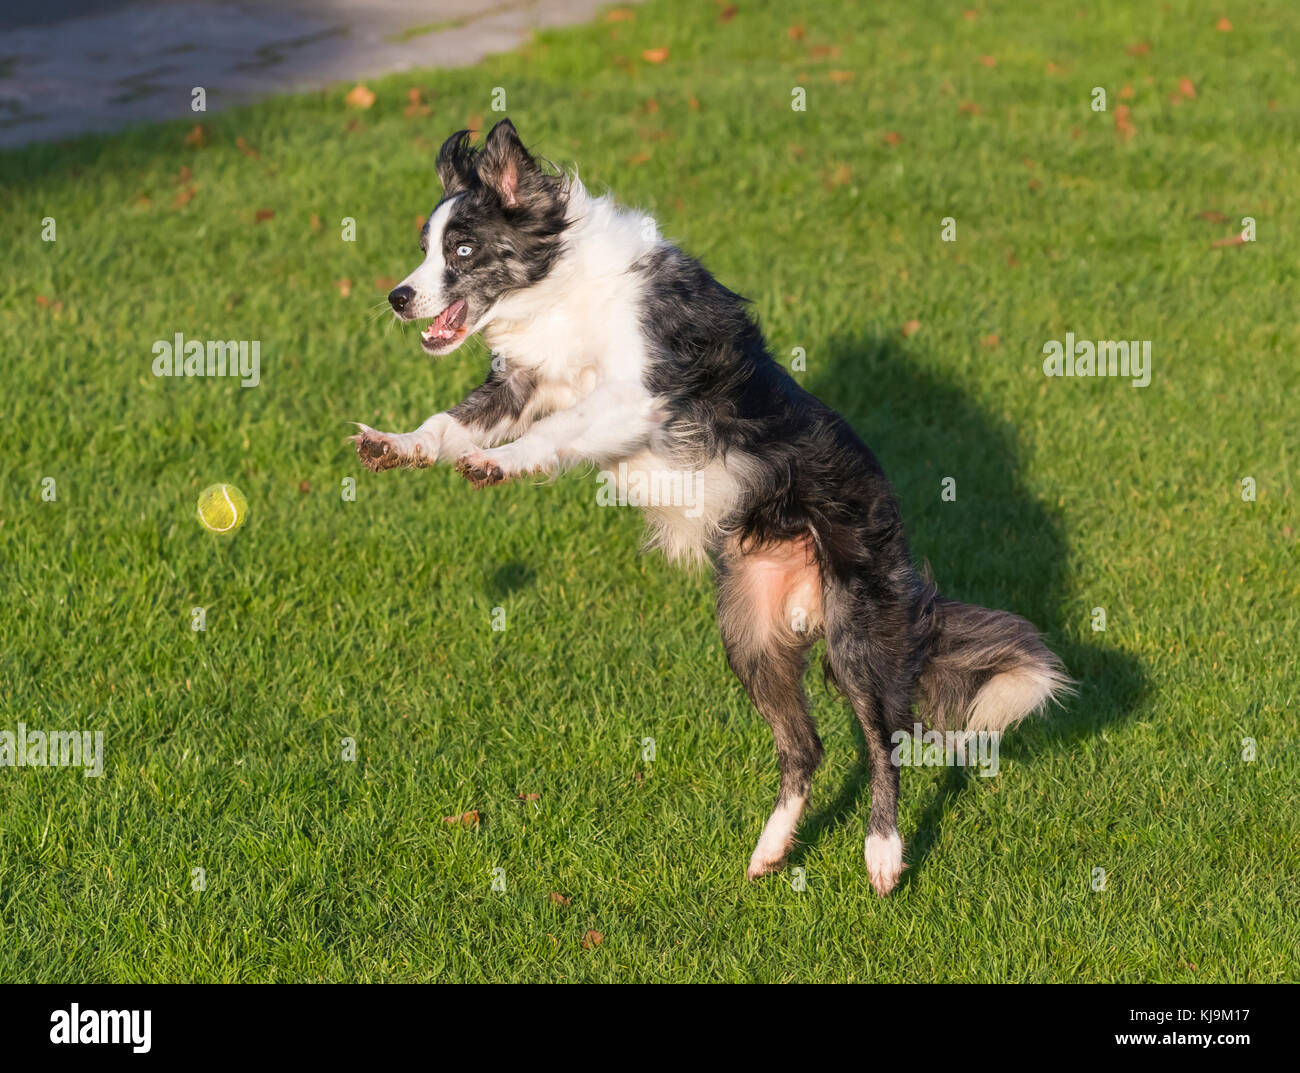 A dog jumping up to catch a ball. - Stock Image